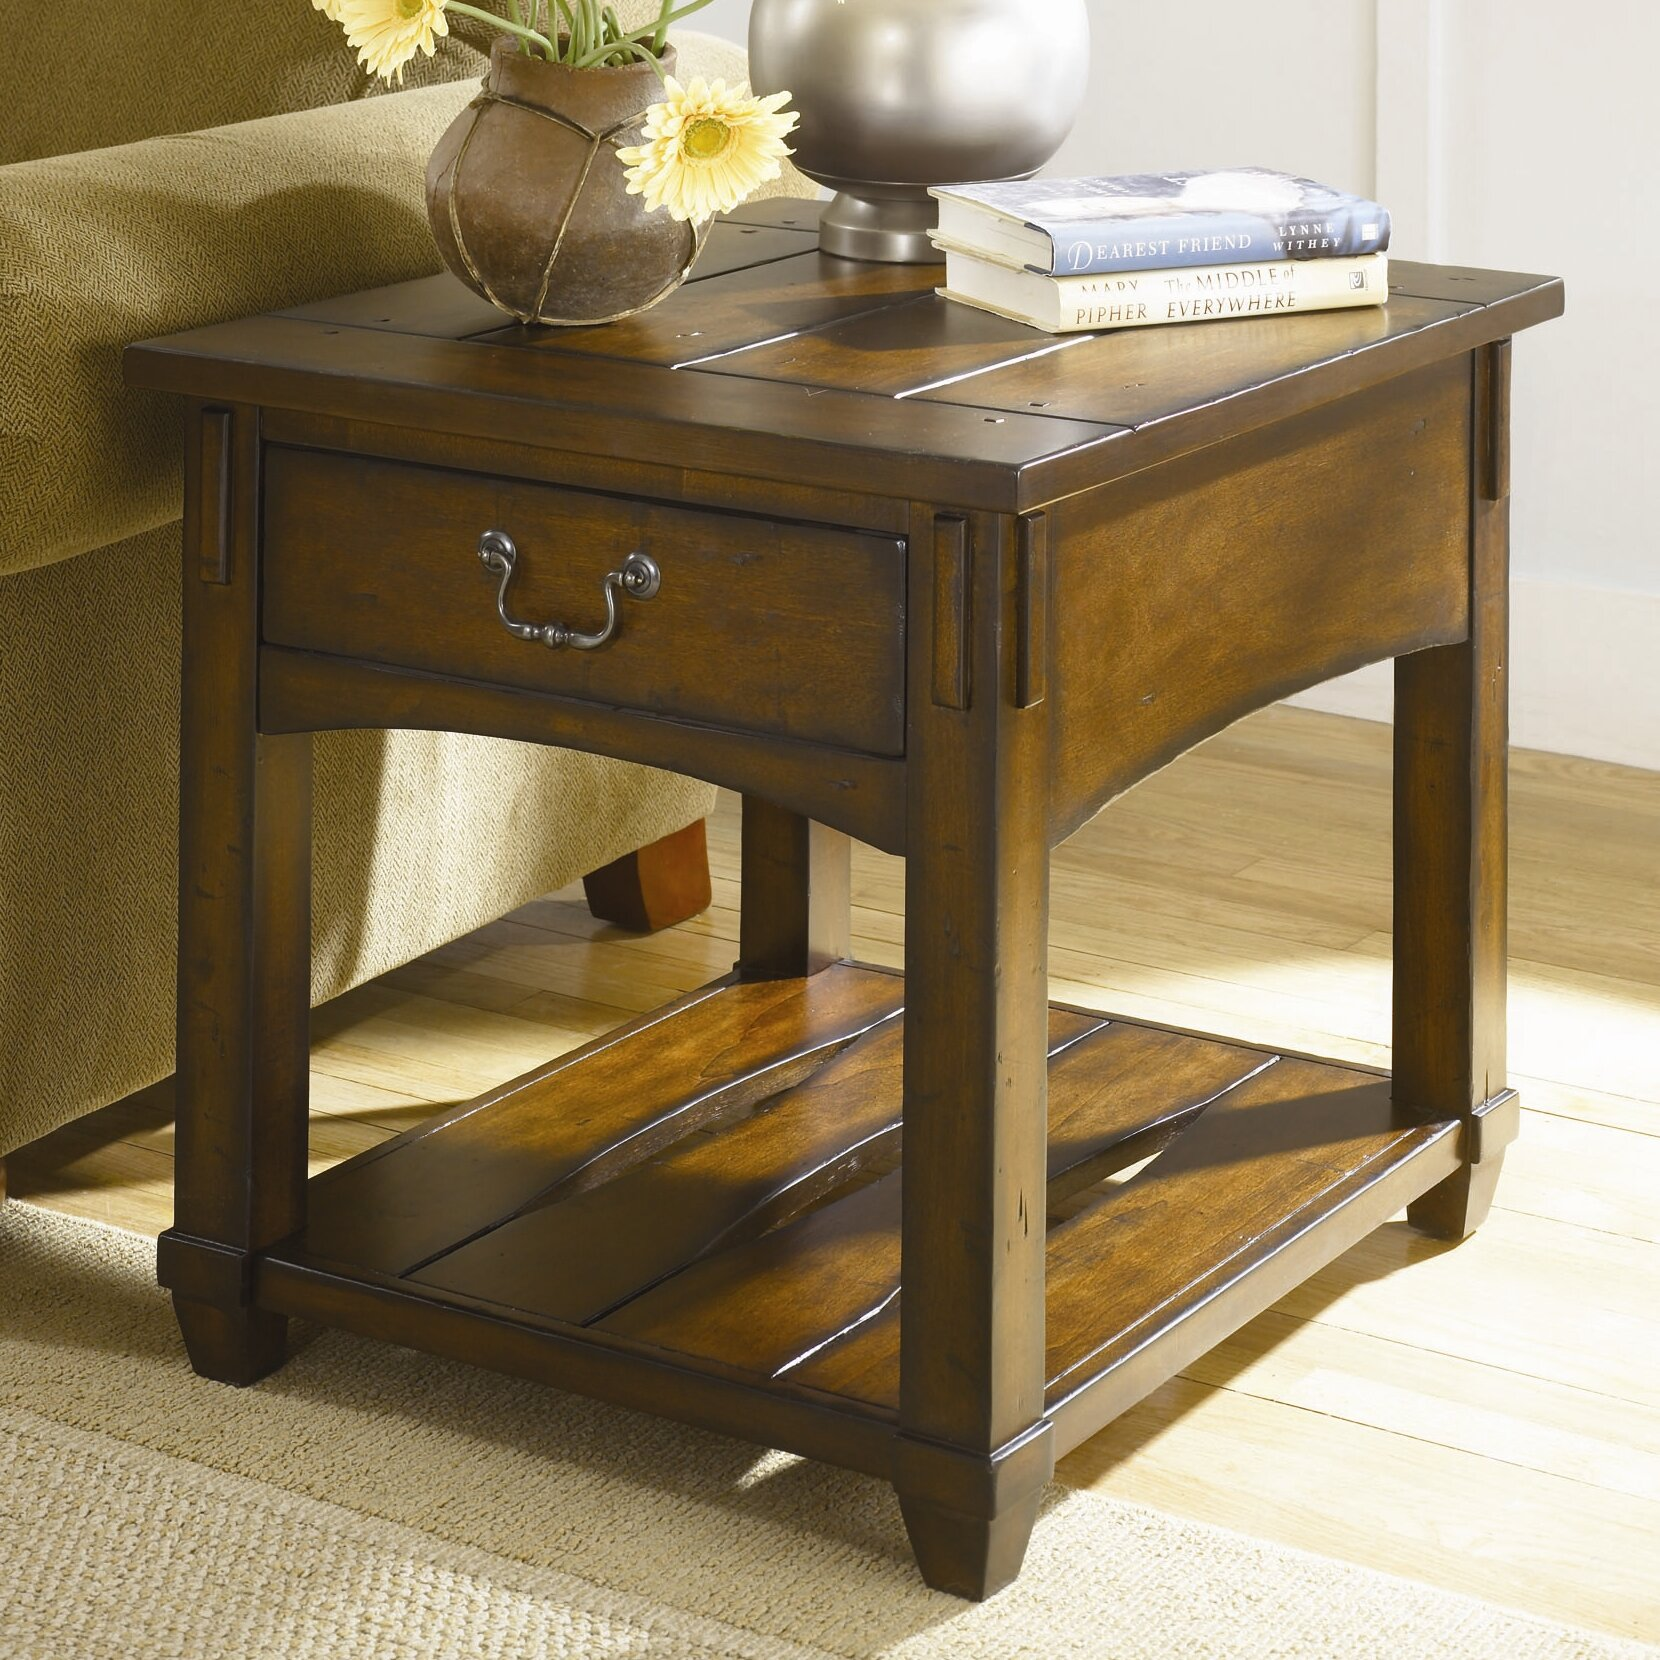 Wayfair Com Sales: Hammary Tacoma Coffee Table Set & Reviews